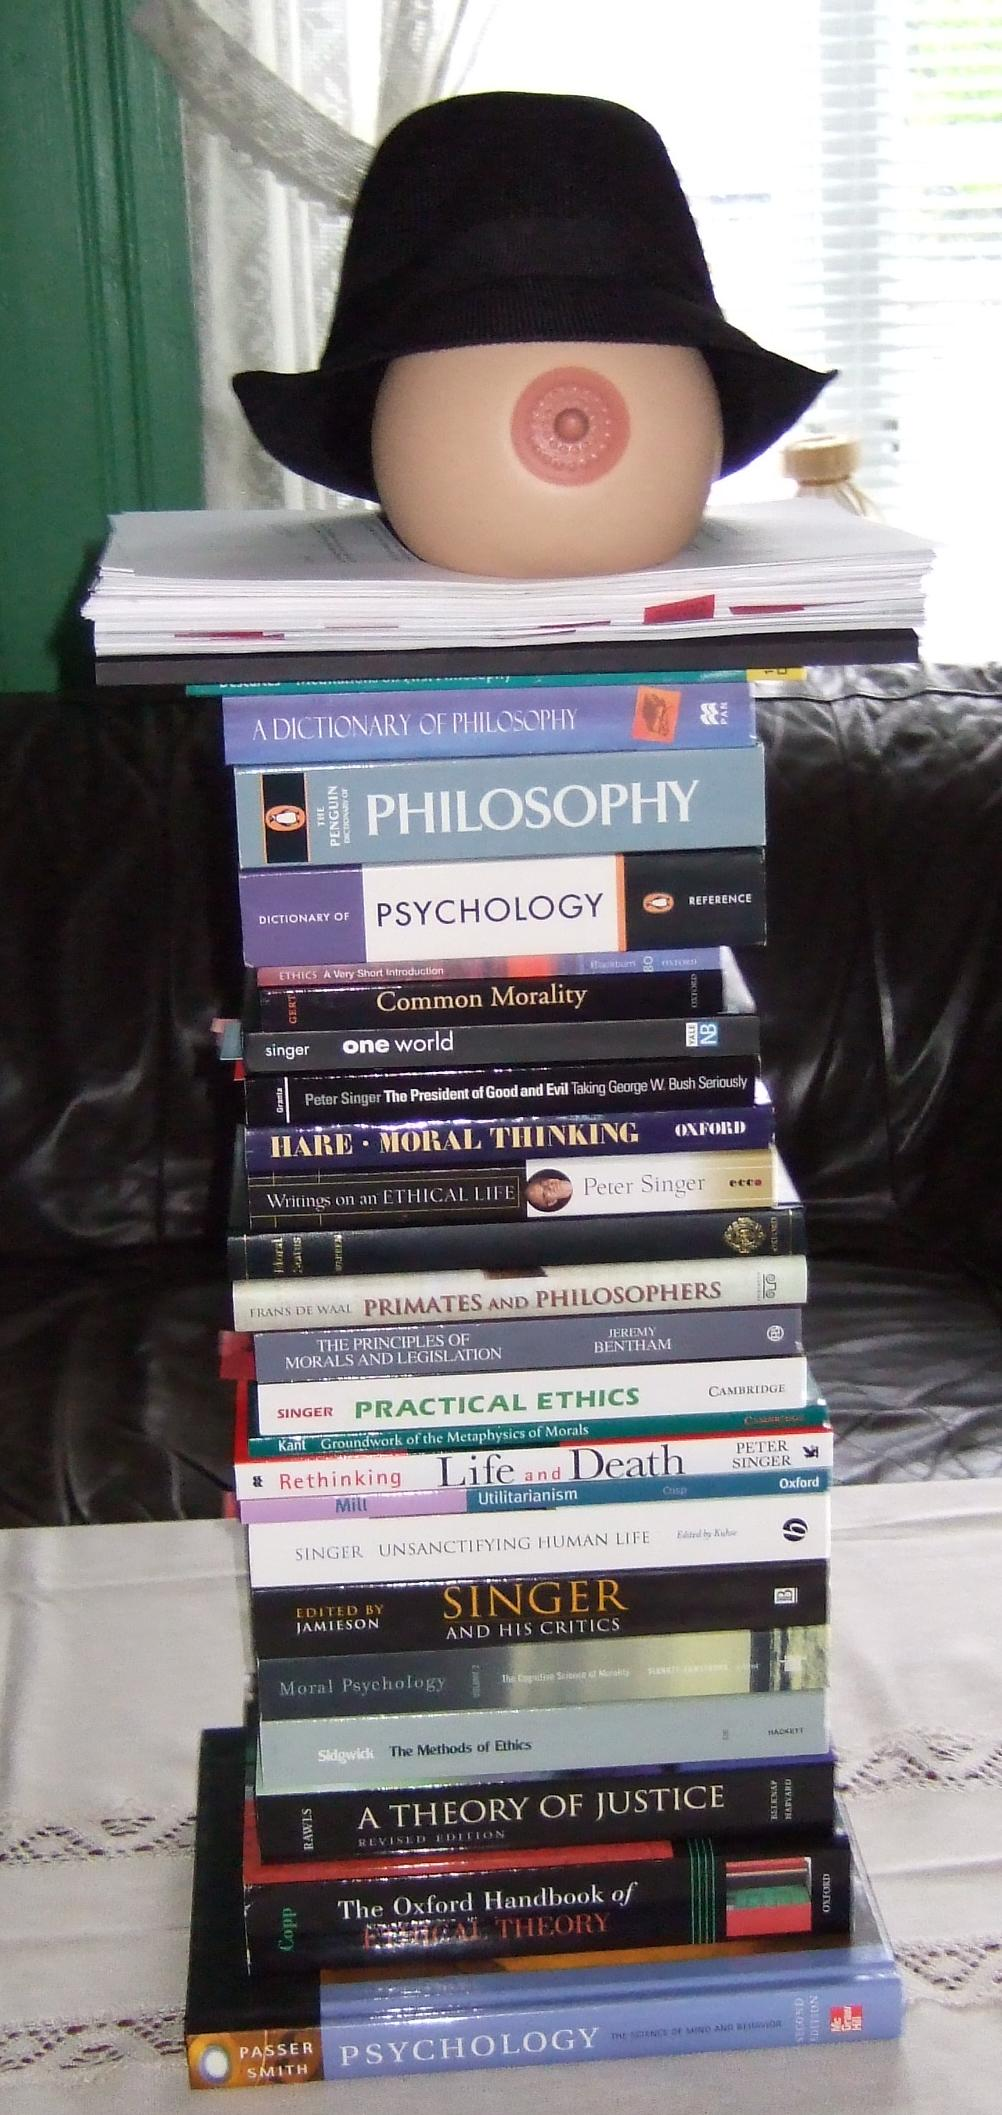 Masters dissertation services references